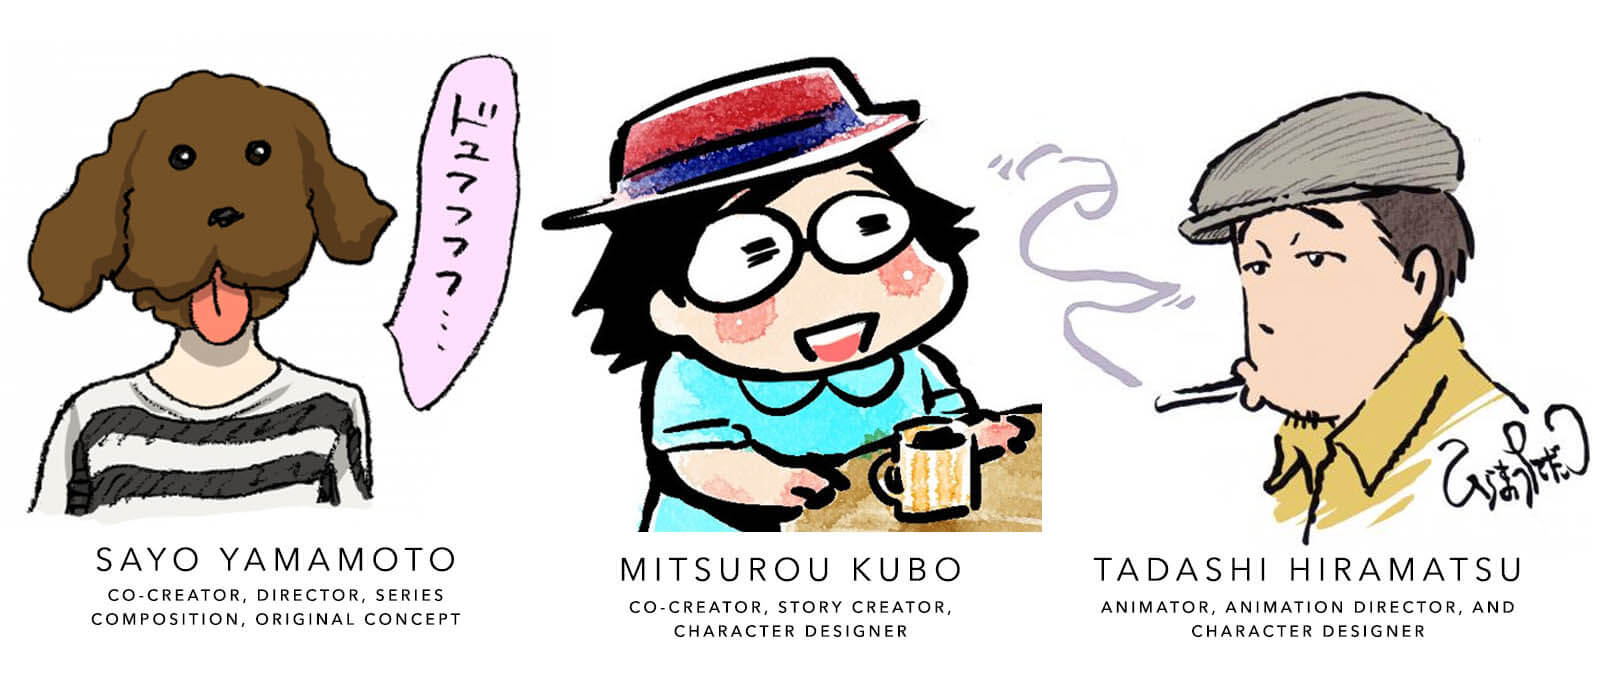 Yamamoto's, Kubo's, and Hiramatsu's avatars they use to associate with themselves